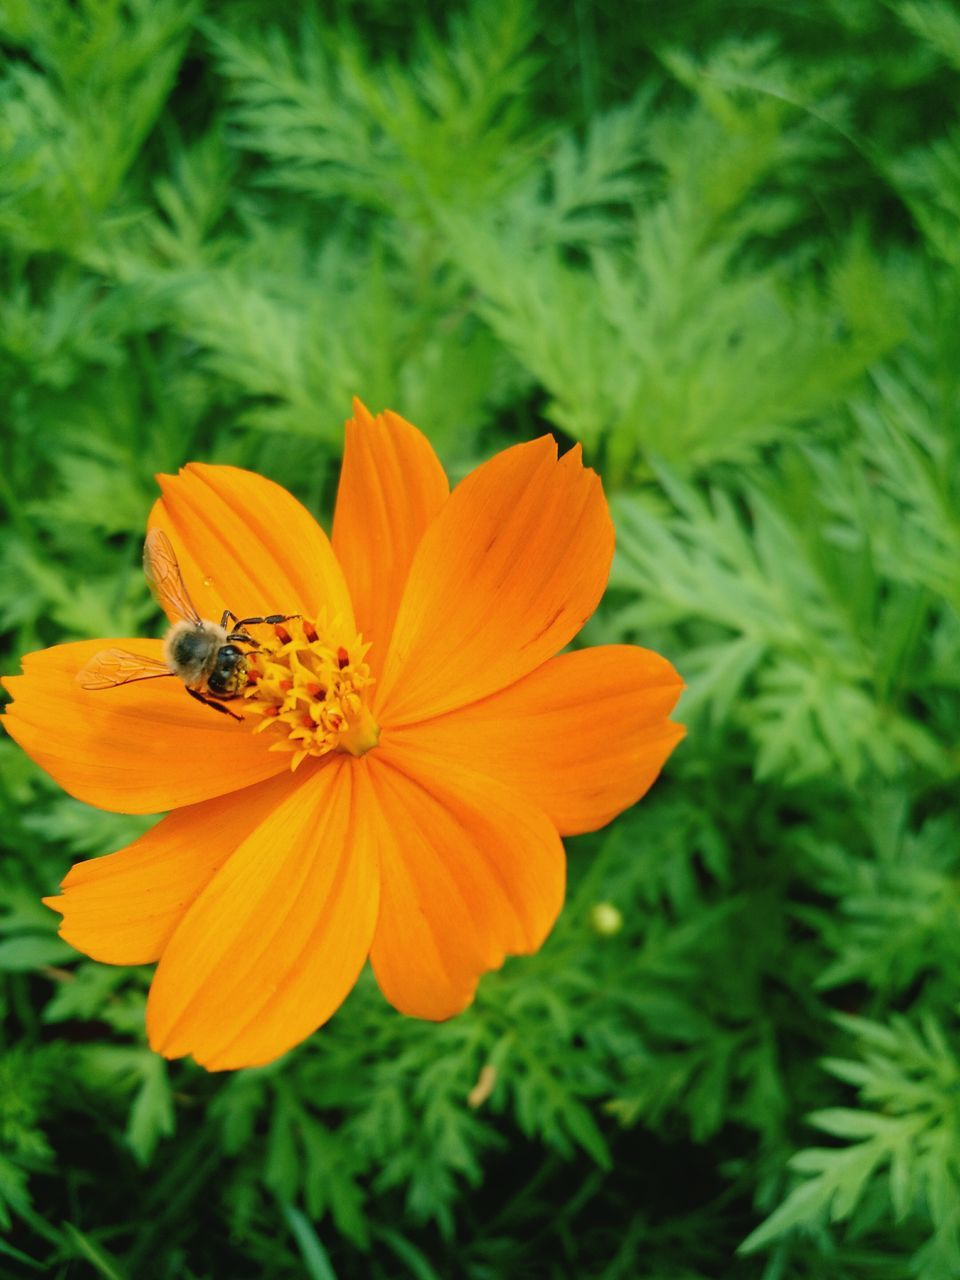 flower, insect, petal, nature, growth, animal themes, fragility, one animal, freshness, animals in the wild, beauty in nature, plant, bee, outdoors, flower head, no people, focus on foreground, animal wildlife, blooming, day, close-up, pollination, buzzing